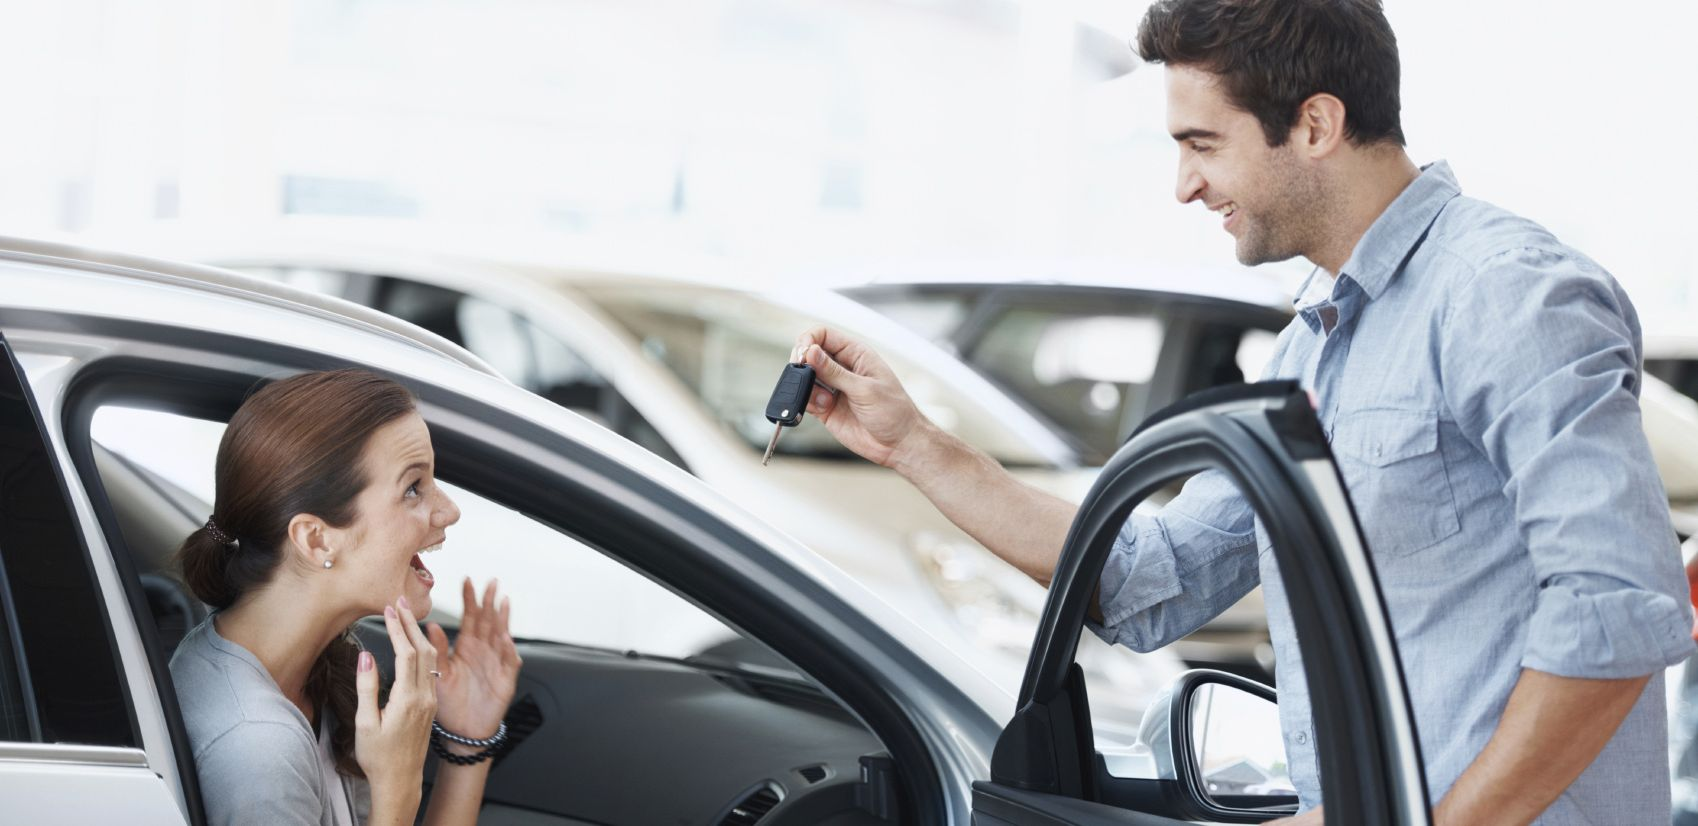 Bad Credit Car Loans in Tomball, TX